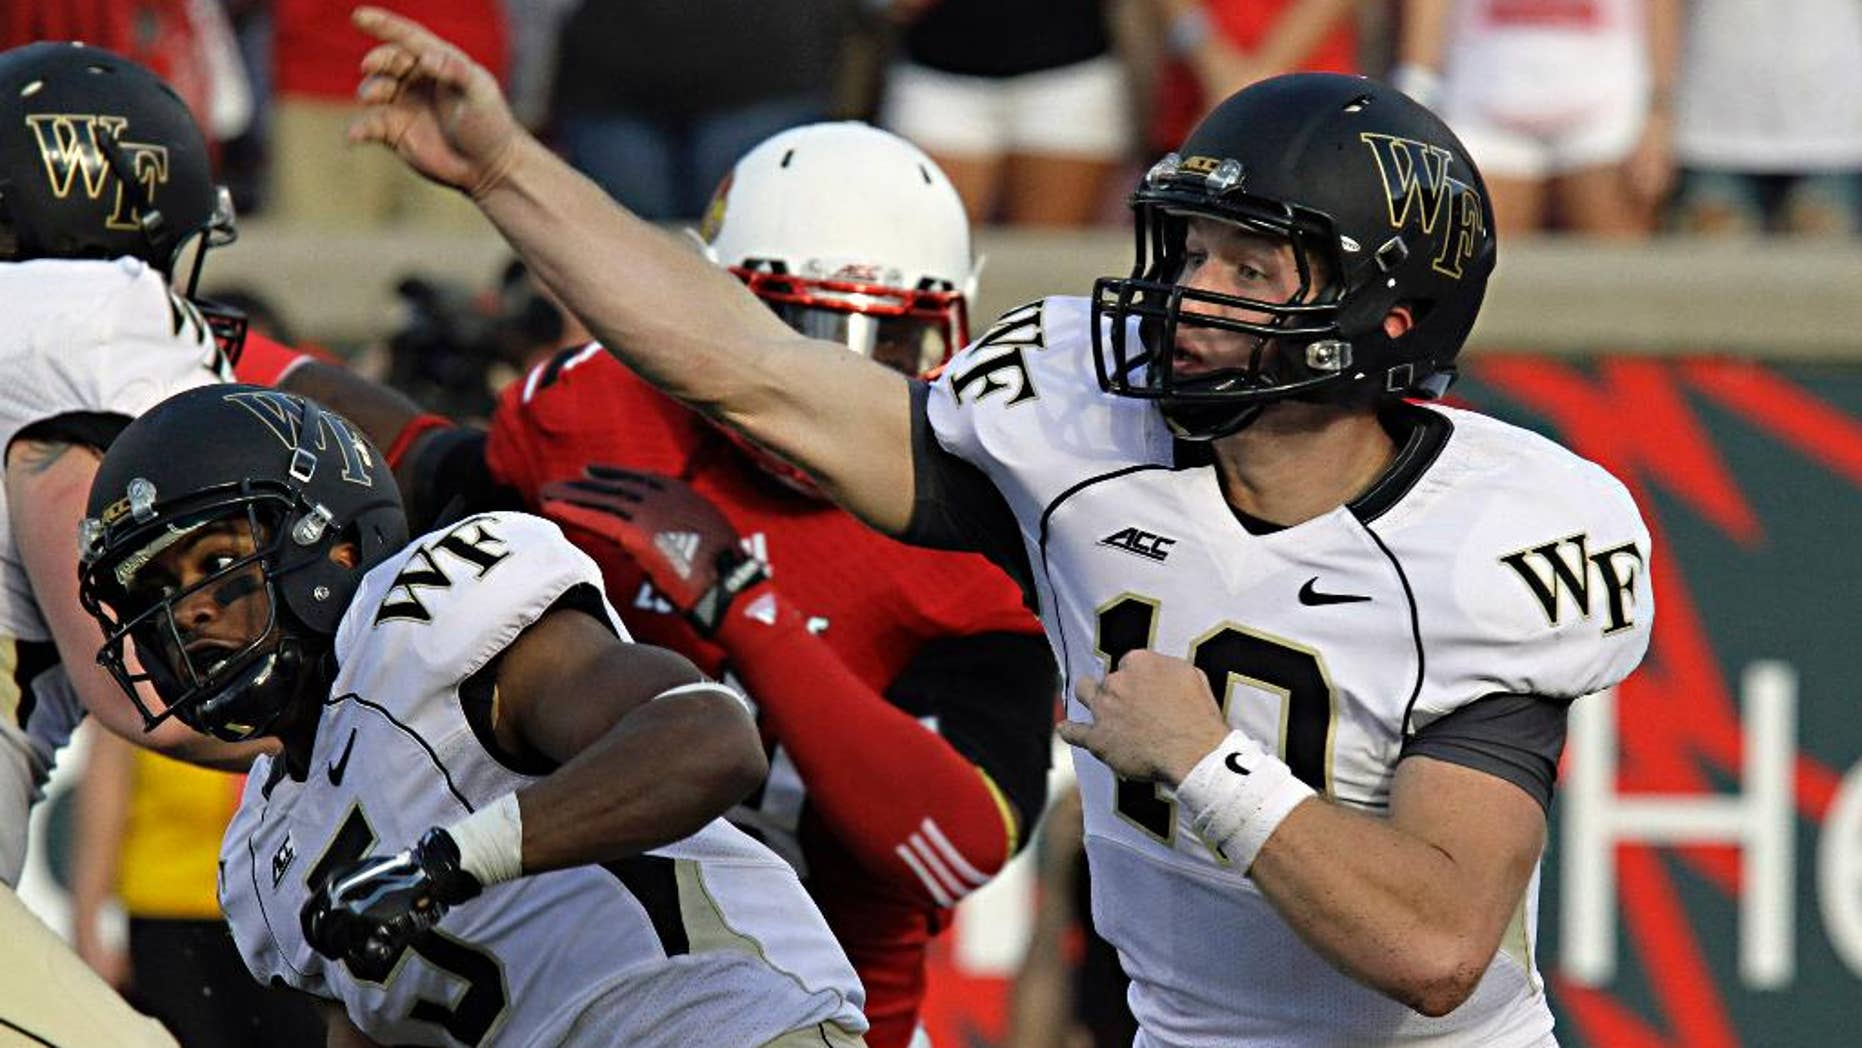 Wake Forest quarterback John Wolford launches a pass attempt against Louisville in their NCAA college football game in Louisville, Ky., Saturday, Sept. 27, 2014. Wolford completed 19 of 34 passes and threw three interceptions in the 20-10 Louisville victory. (AP Photo/Garry Jones)